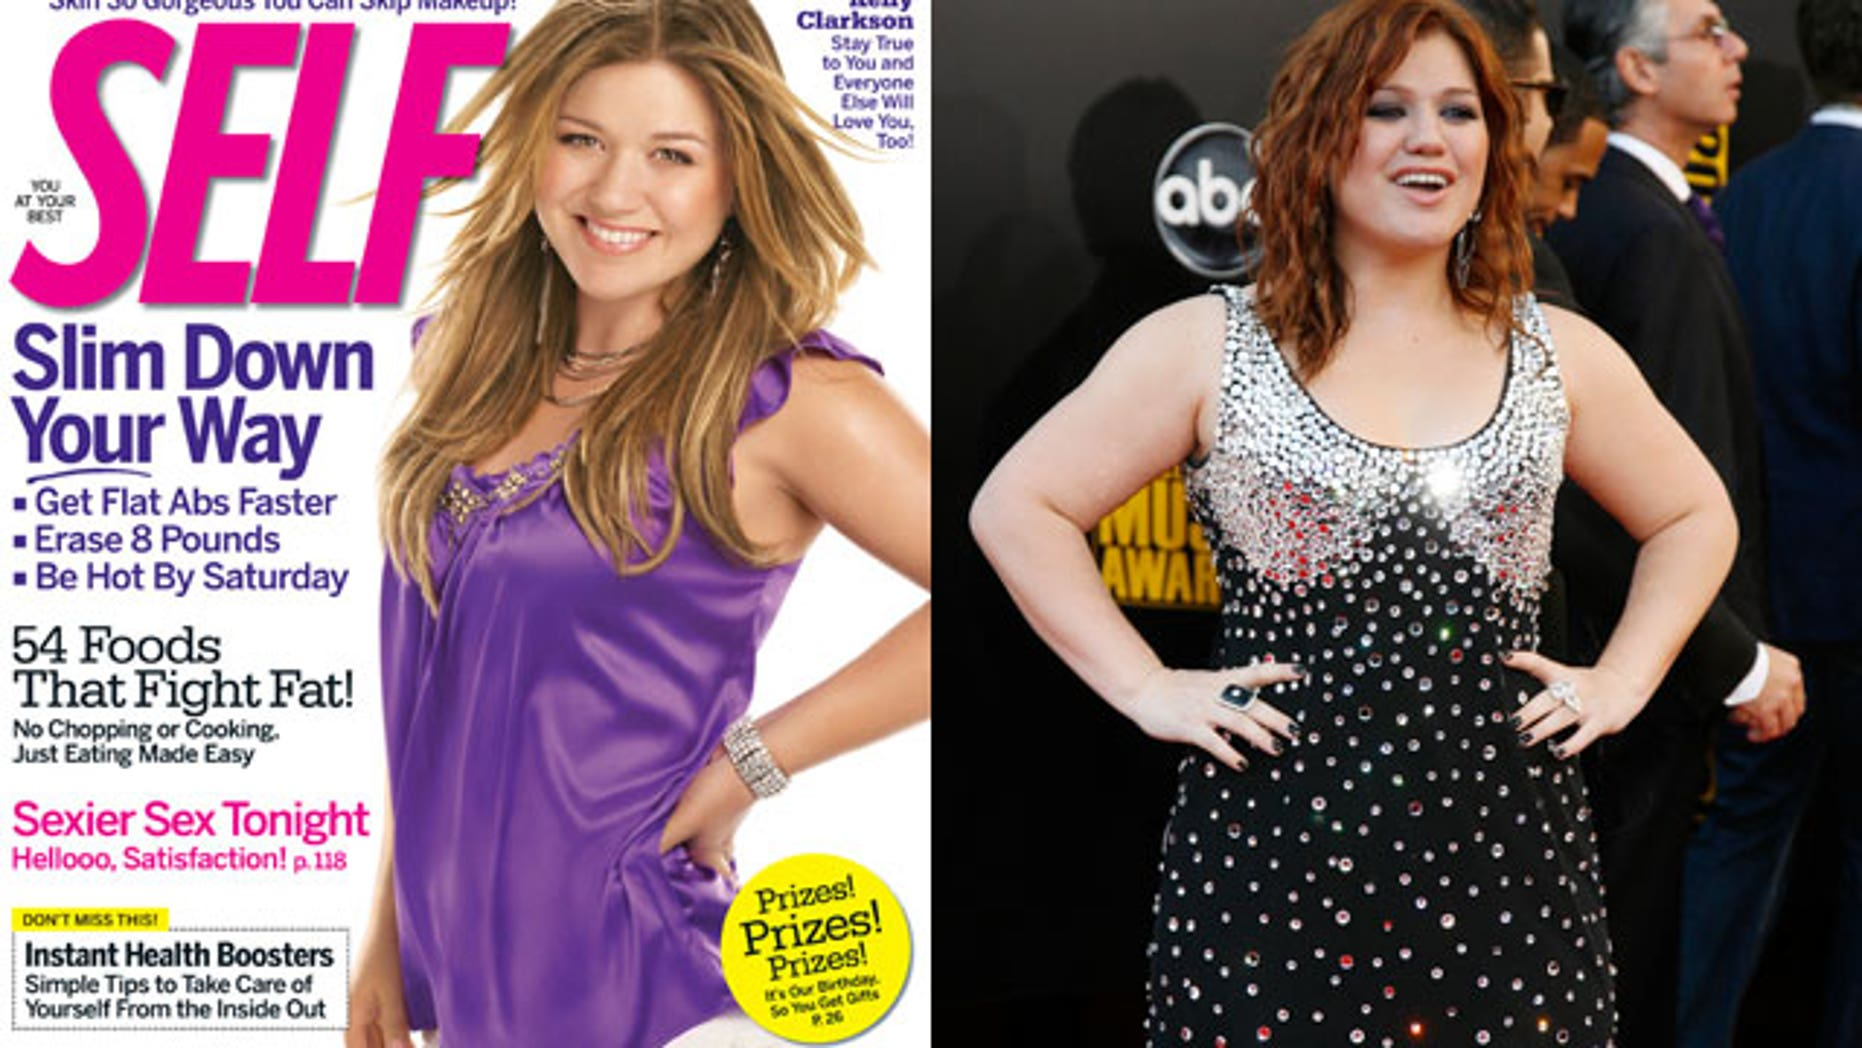 Some say Kelly Clarkson was made to look thinner on Self magazine recently. Is airbrushing a necessity or over-the top?